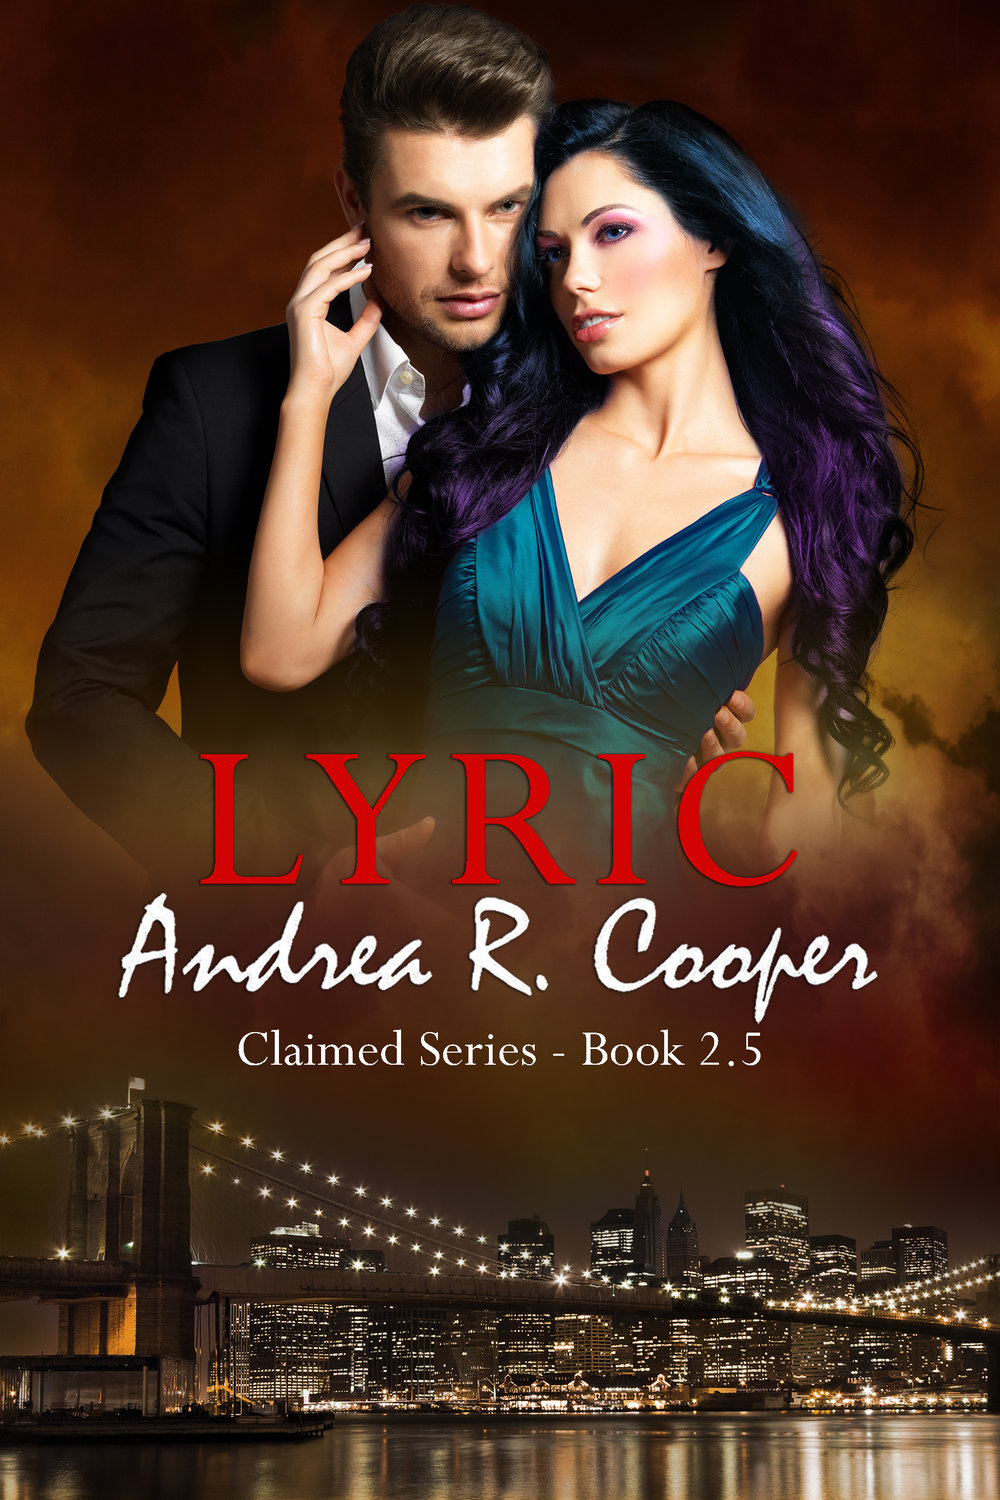 Lyric Book Cover - Author Andrea R. Cooper